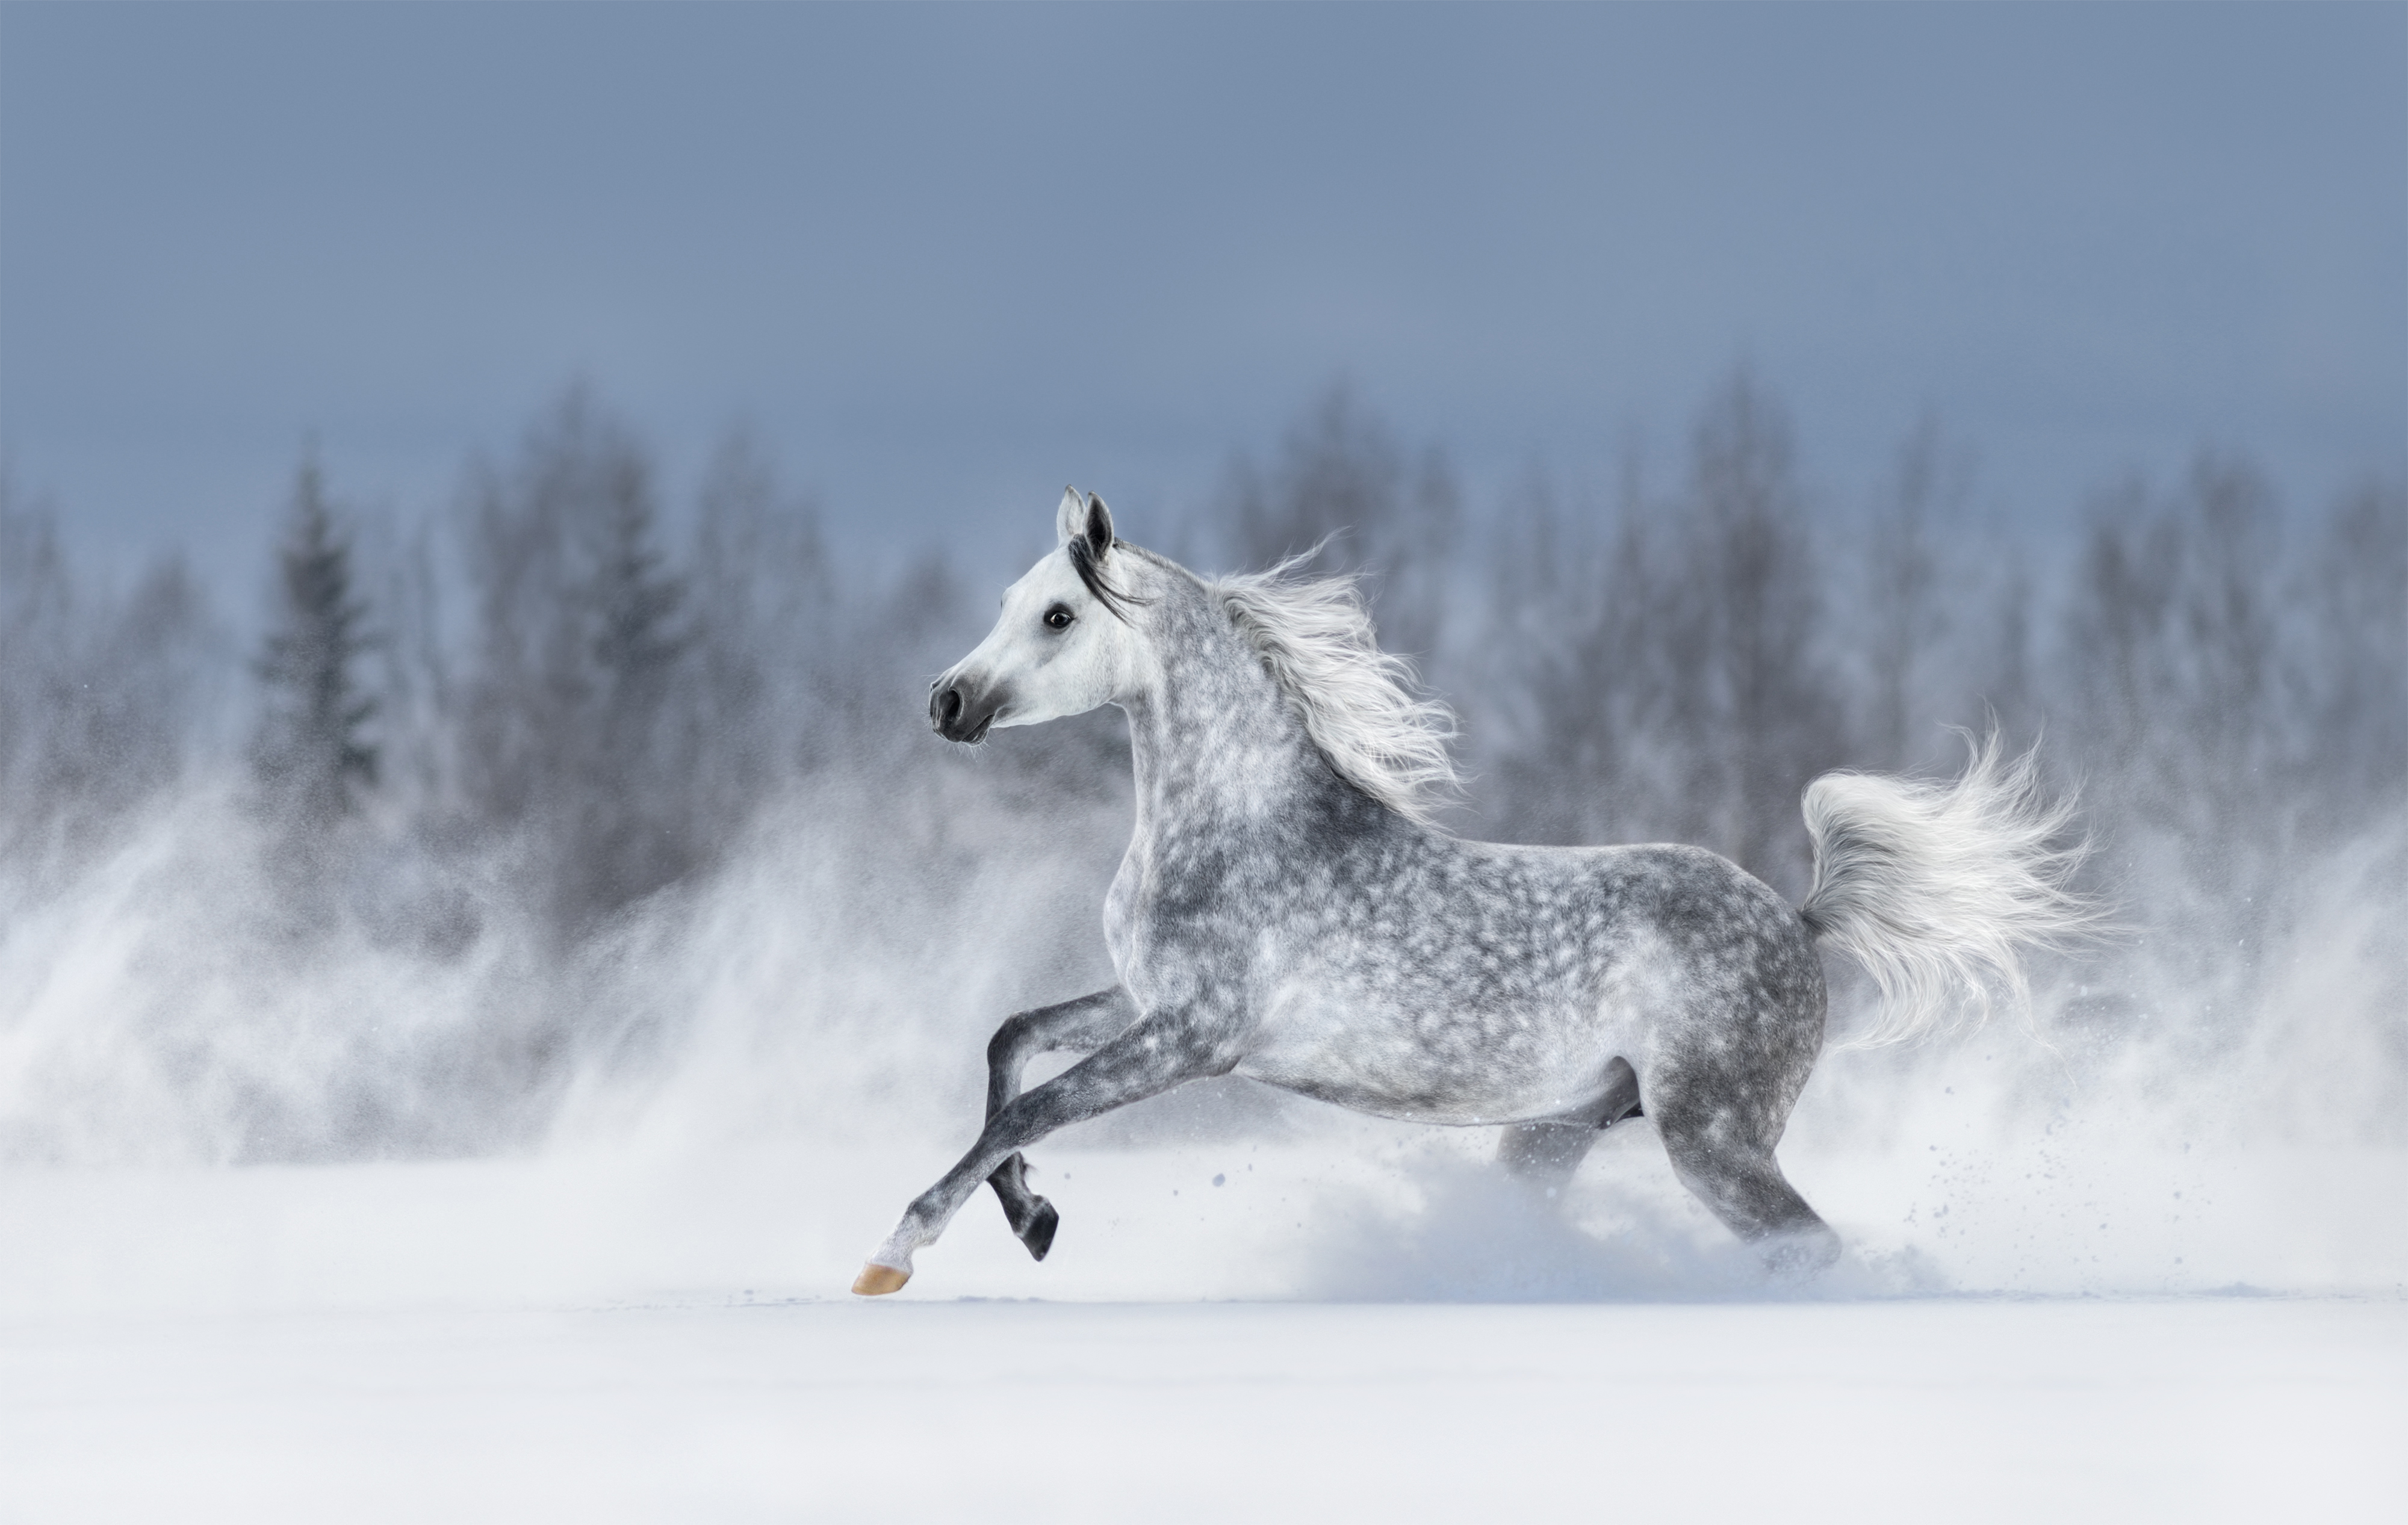 Purebred grey arabian horse galloping during blizzard across winter snowy field. Side view.